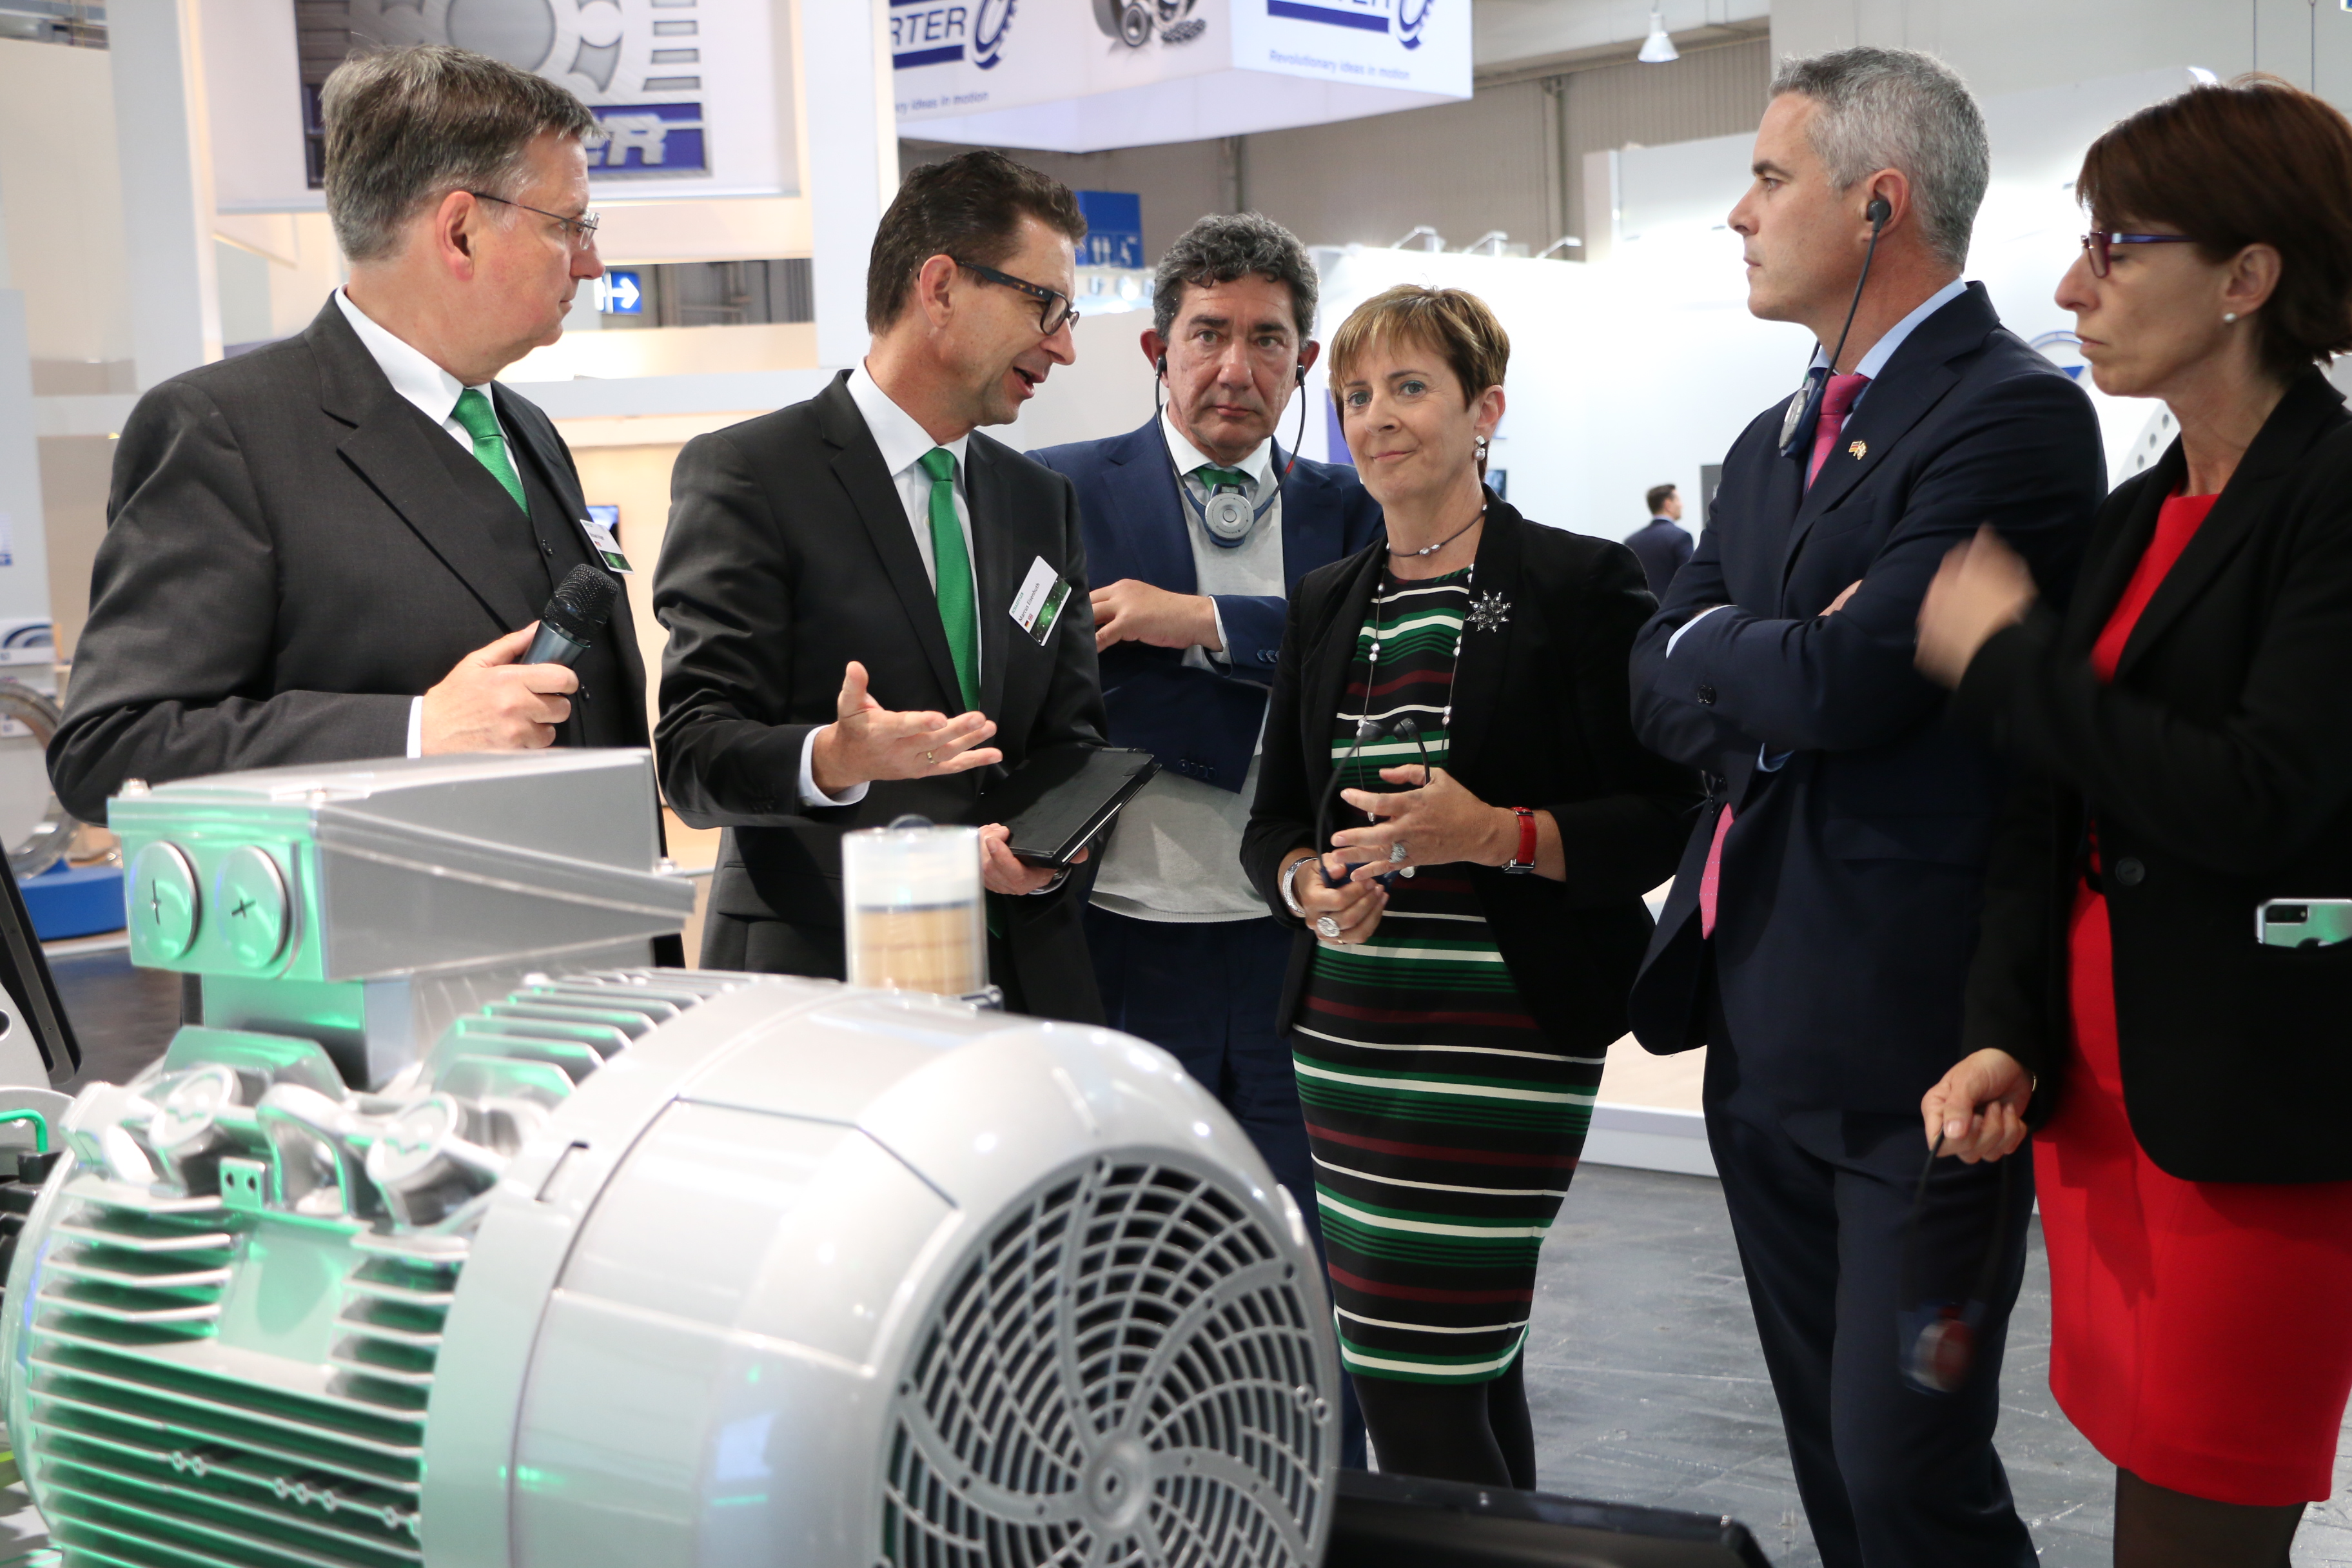 2017_04_24_tapia_hannover_messe_13.jpg